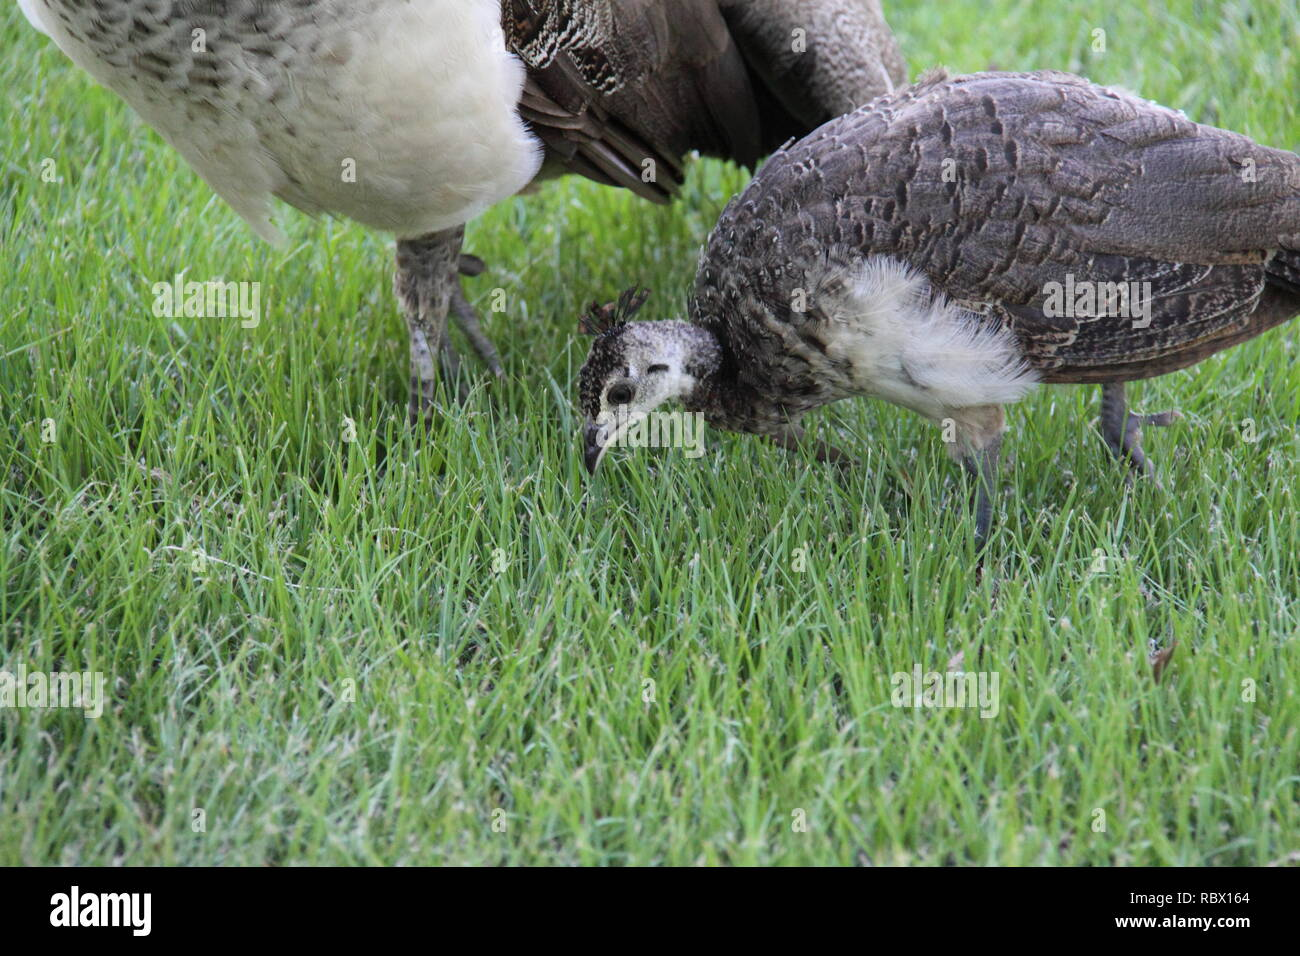 Peacock Chick (Pavo Cristatus) Foraging next to Mother Peahen - Stock Image